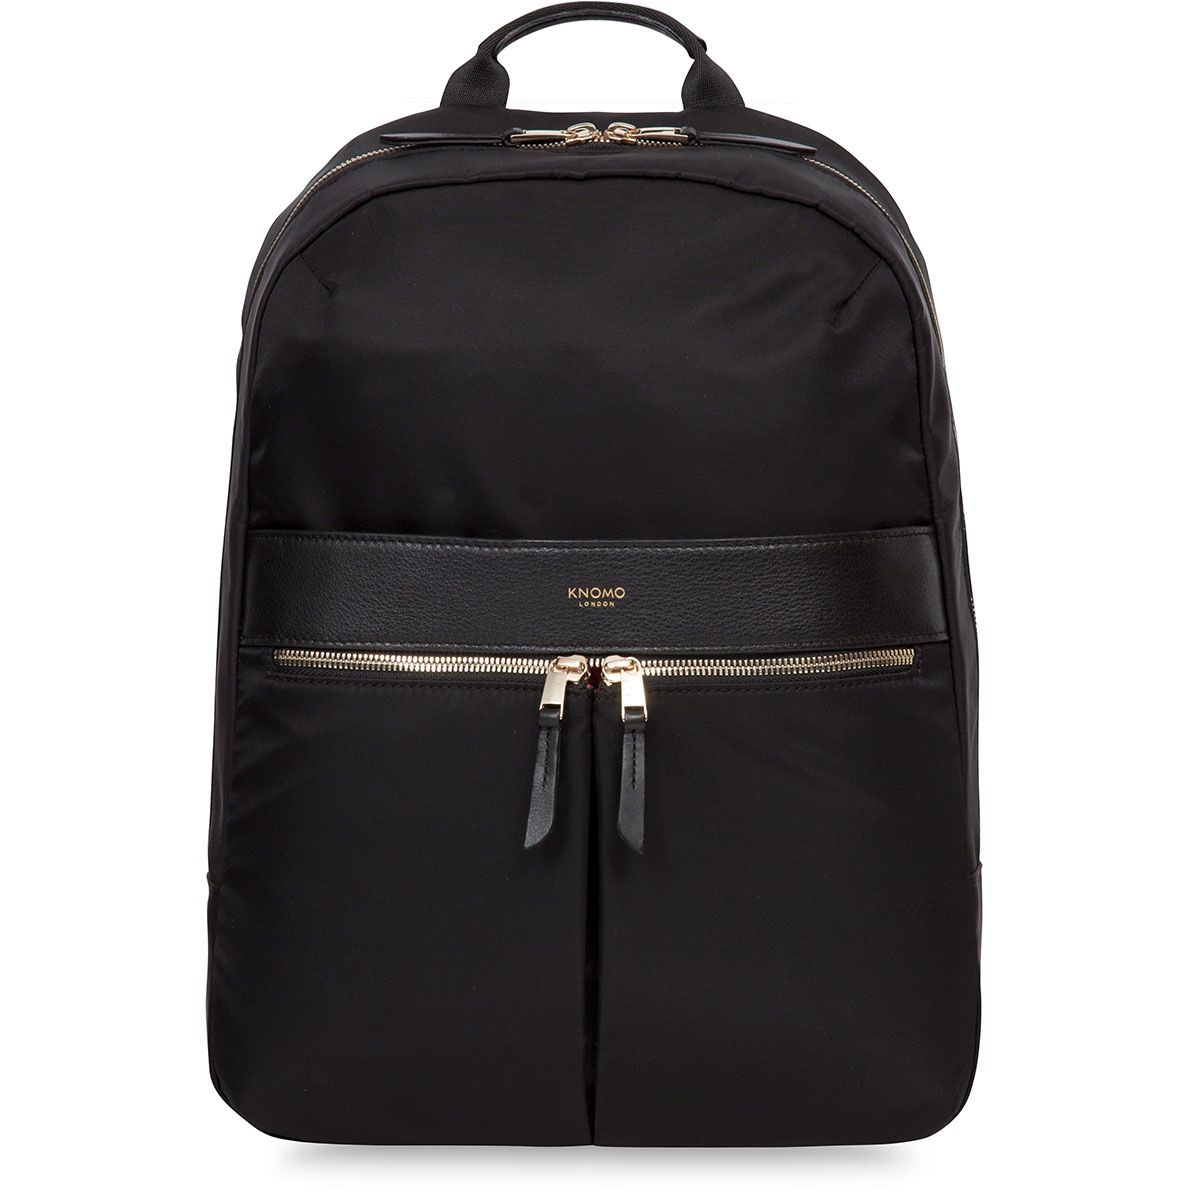 Laptop rugzak Knomo Beauchamp Backpack Black 14 inch